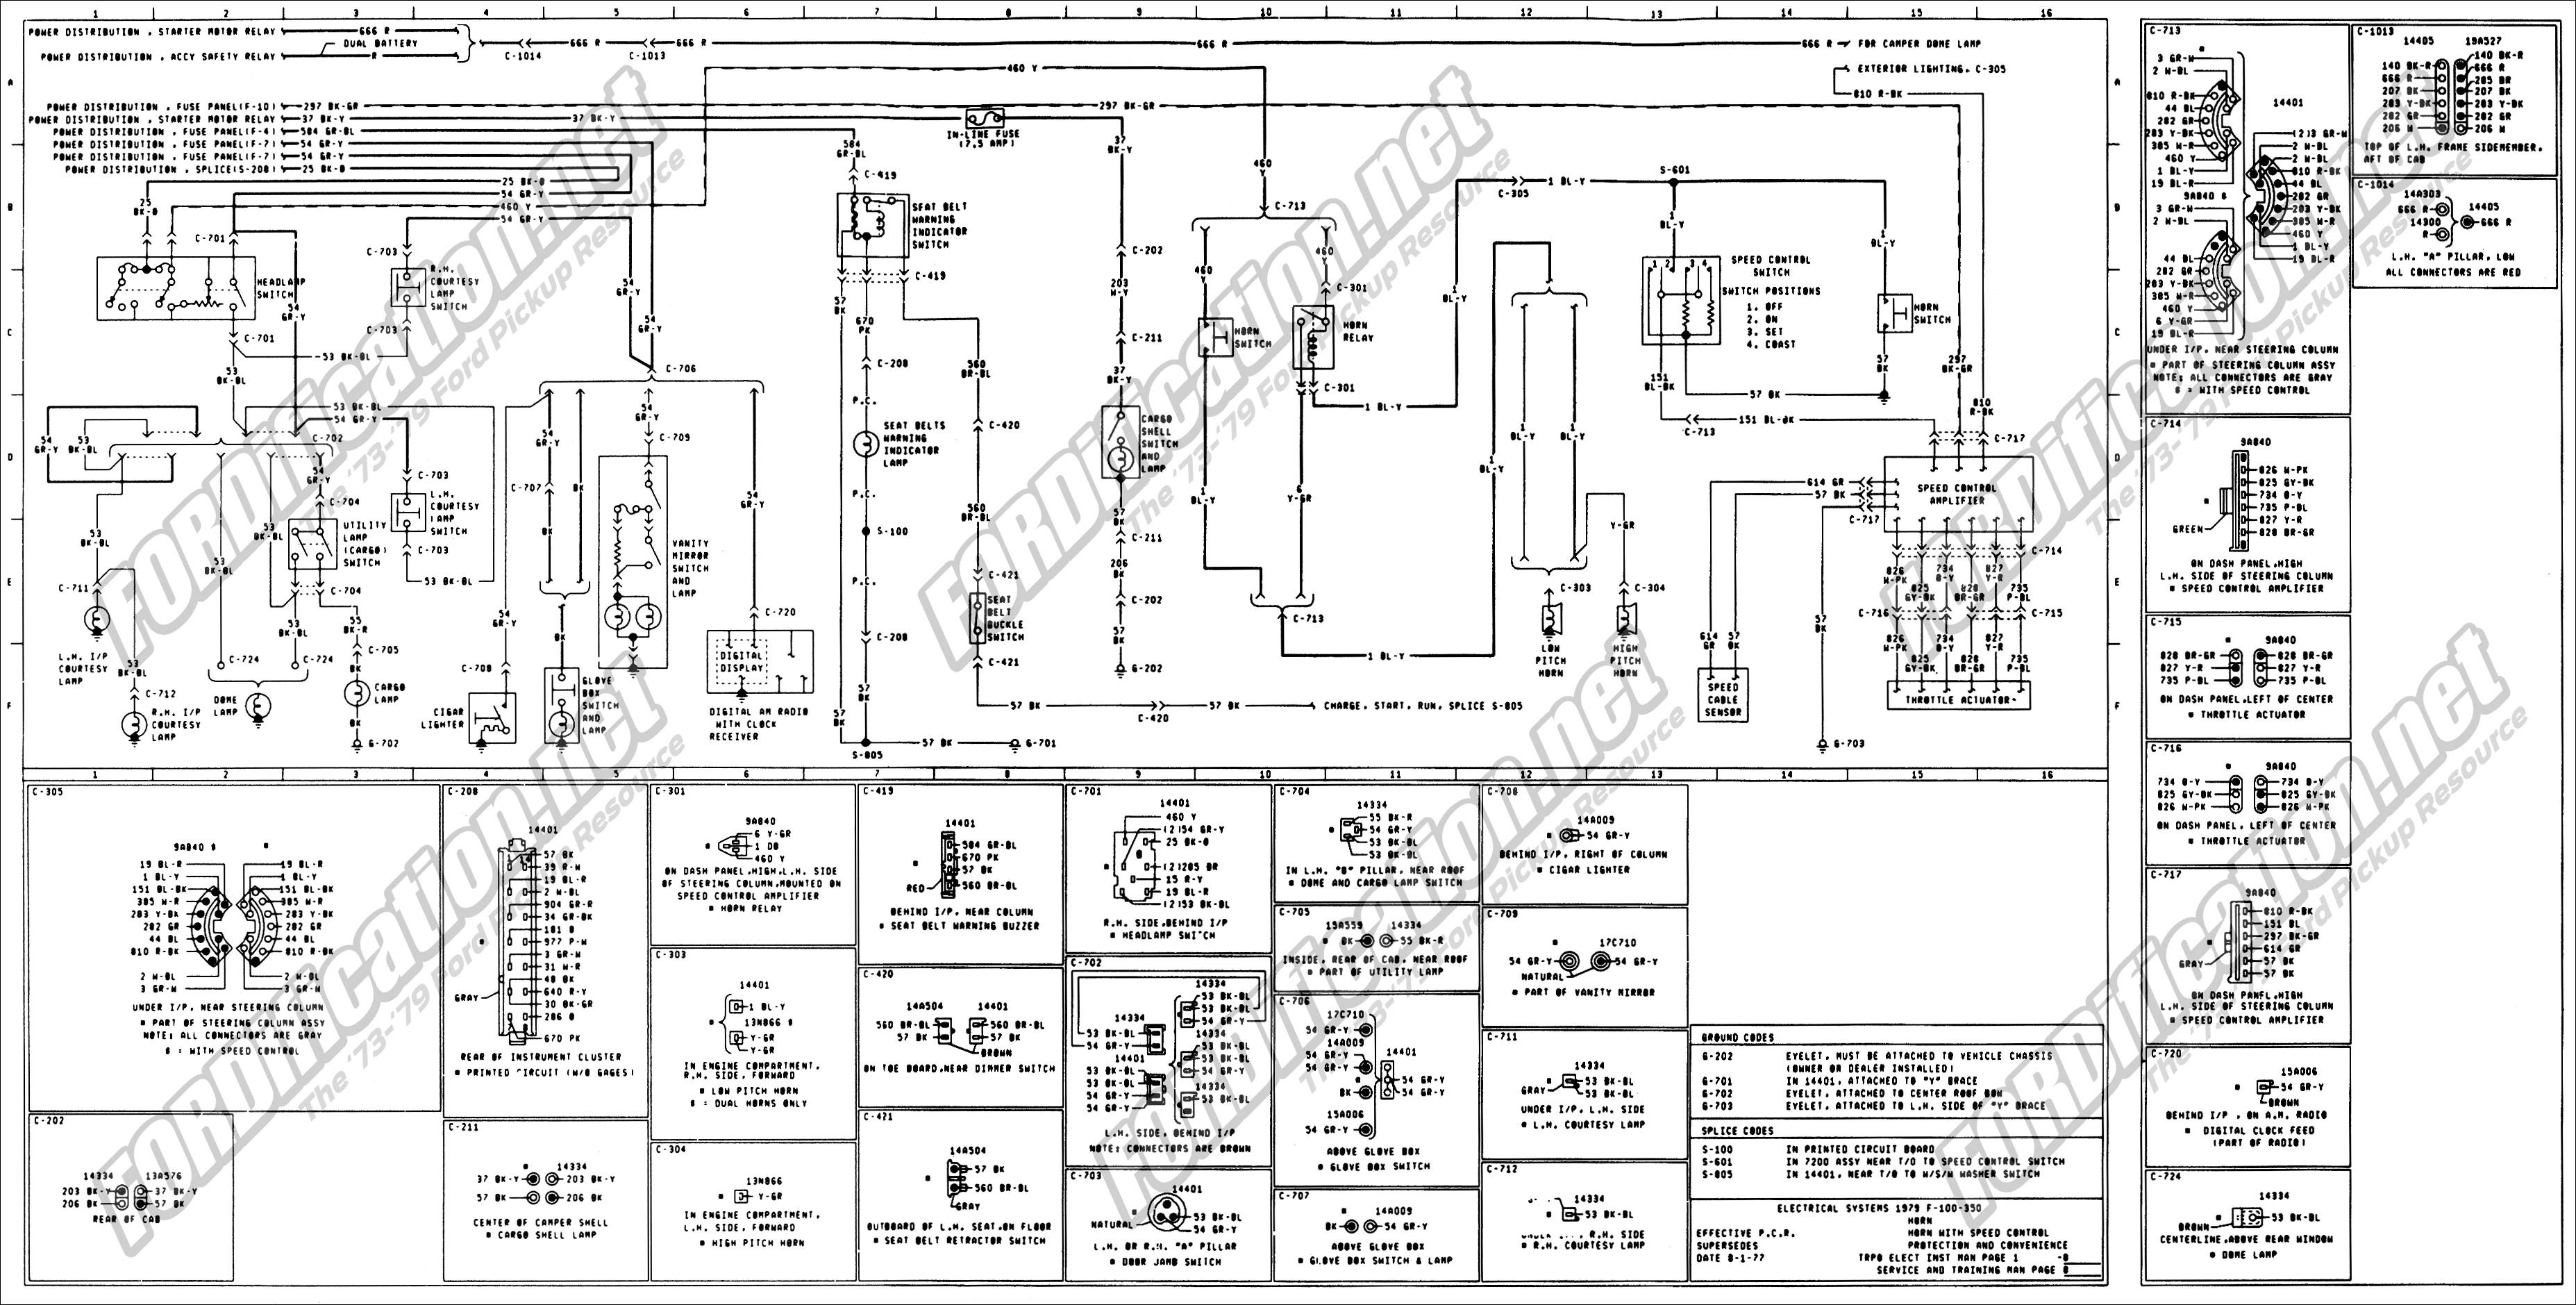 1990 ford 460 engine diagram schematics wiring diagrams u2022 rh orwellvets co 1999 F150 Brake Lines F150 Brake System